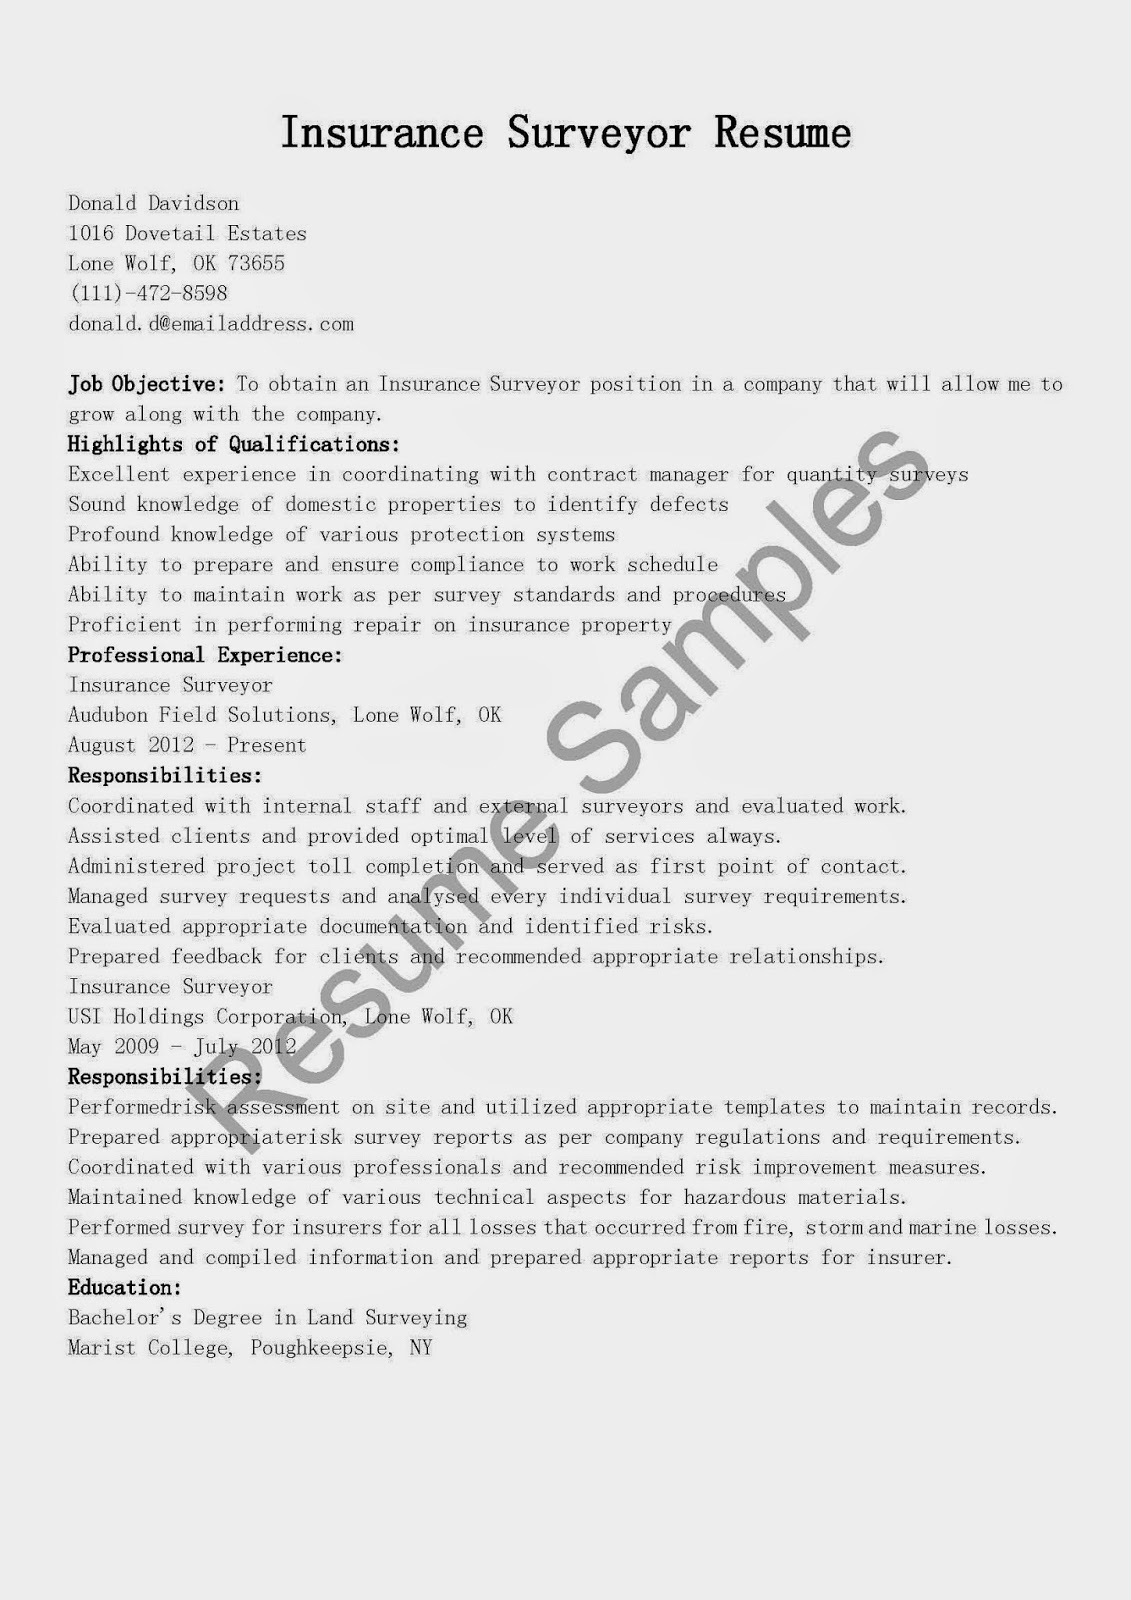 Sample Resume For Underwriting Assistant Project Cover Letters And Insurance